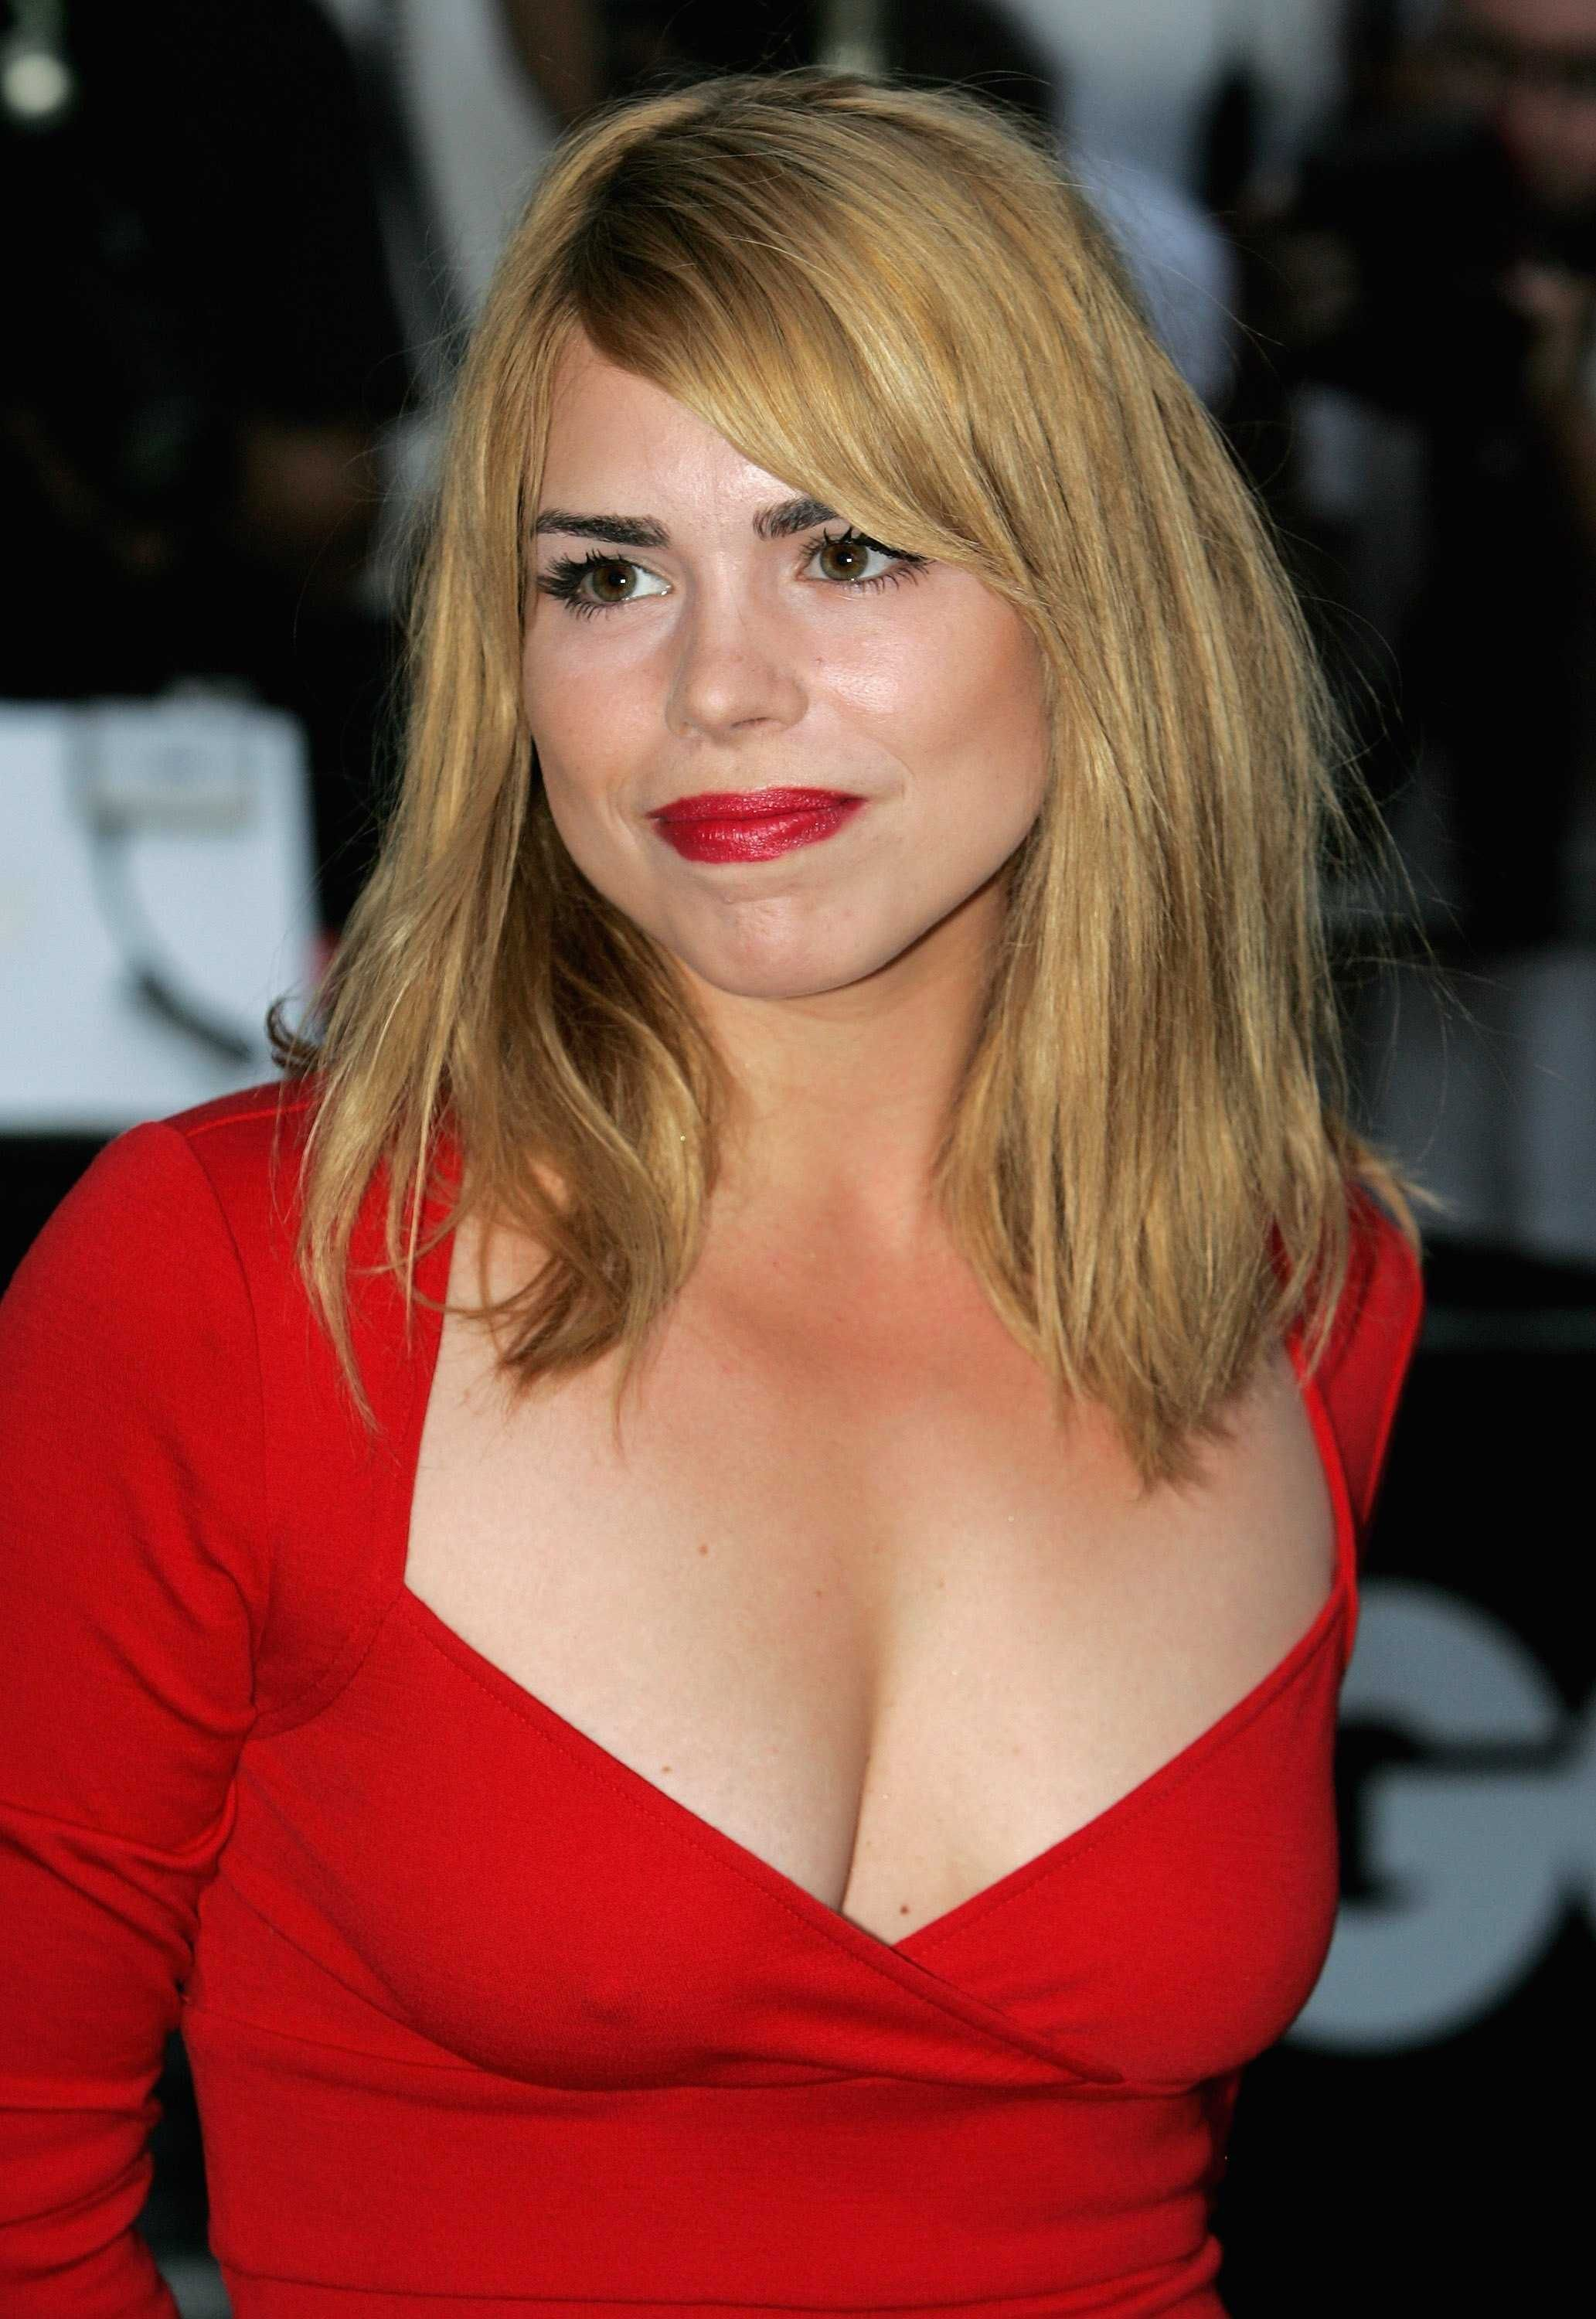 billie piper day and night download